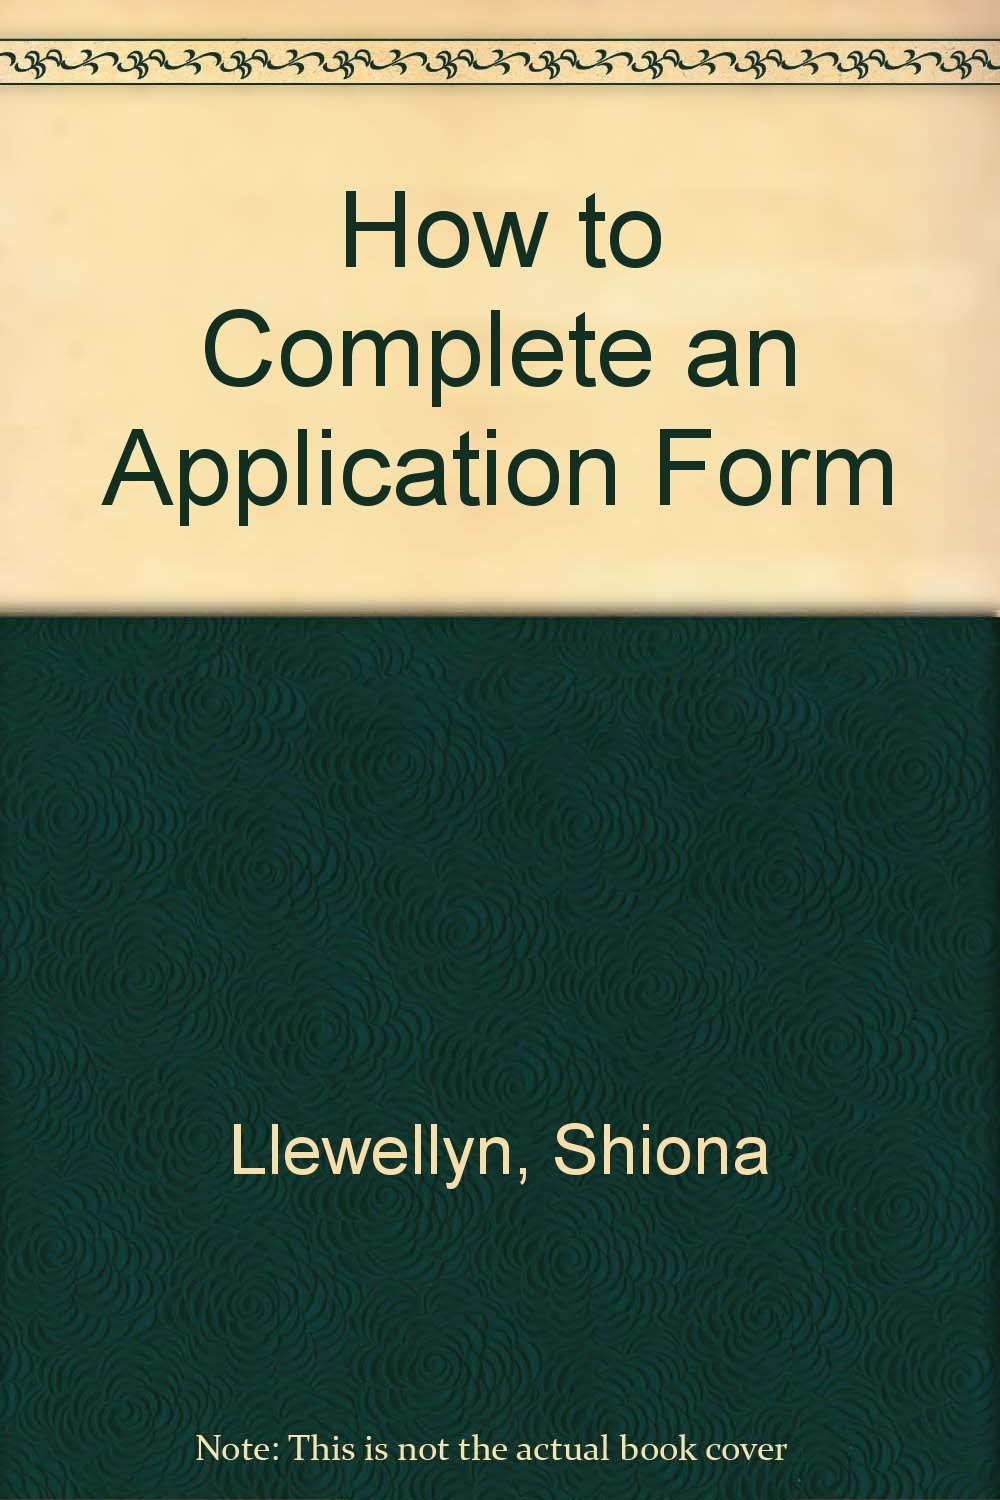 how to complete an application form amazon co uk shiona how to complete an application form amazon co uk shiona llewellyn dinah langley 9780718712358 books